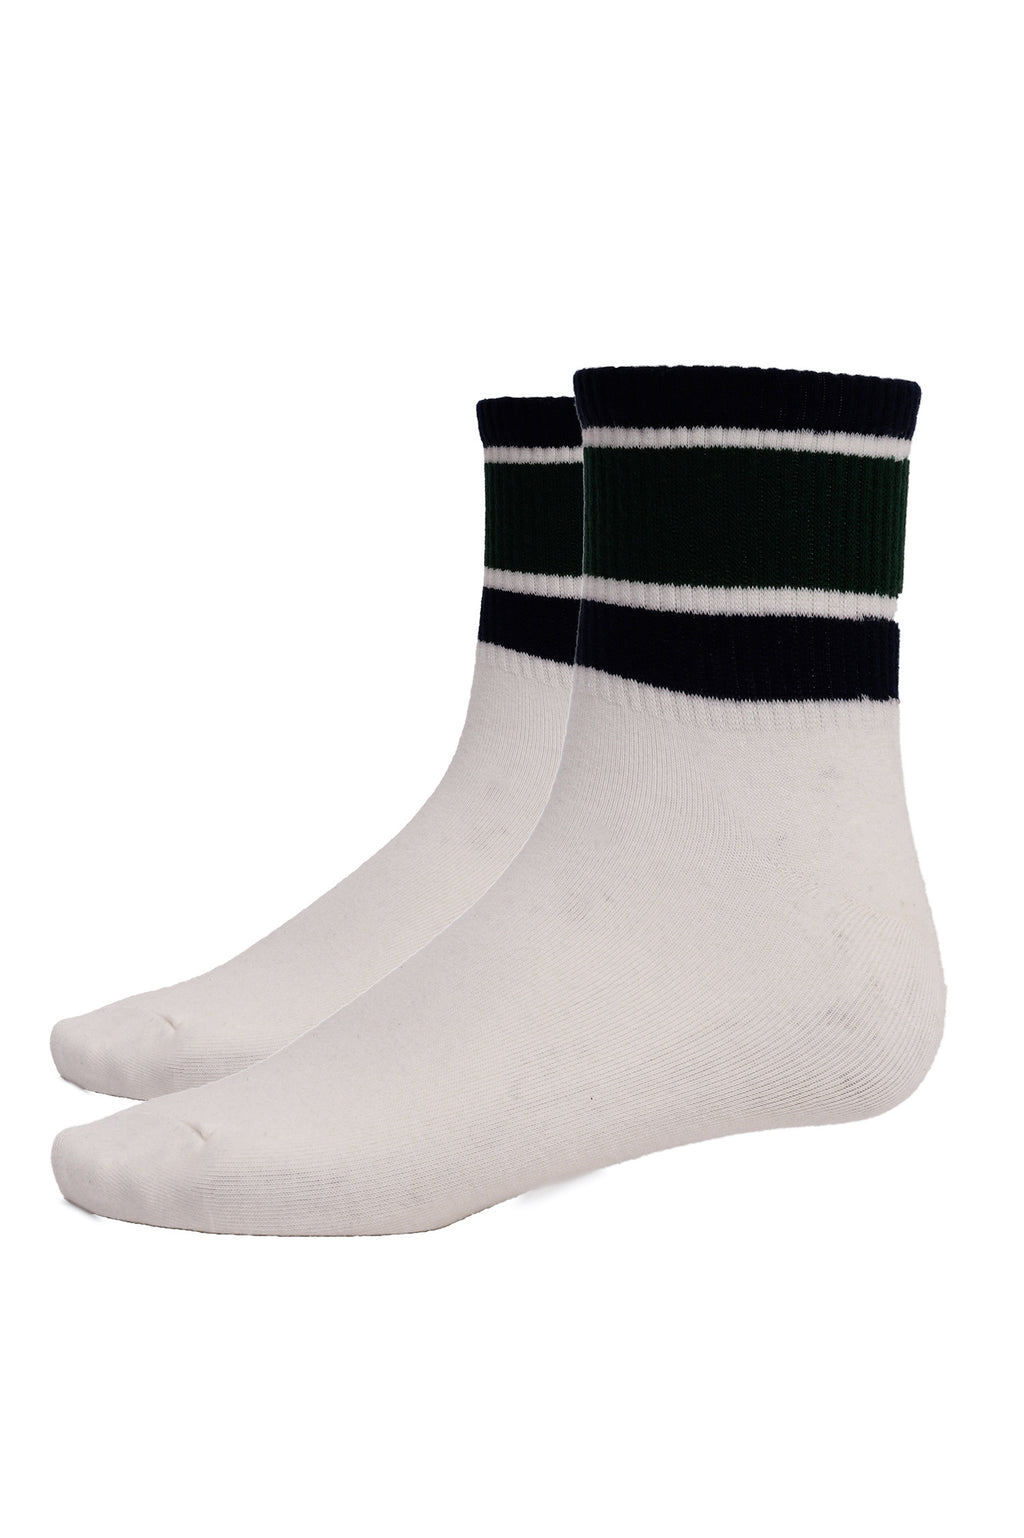 SPORTS SOCKS -WHITE-GREEN